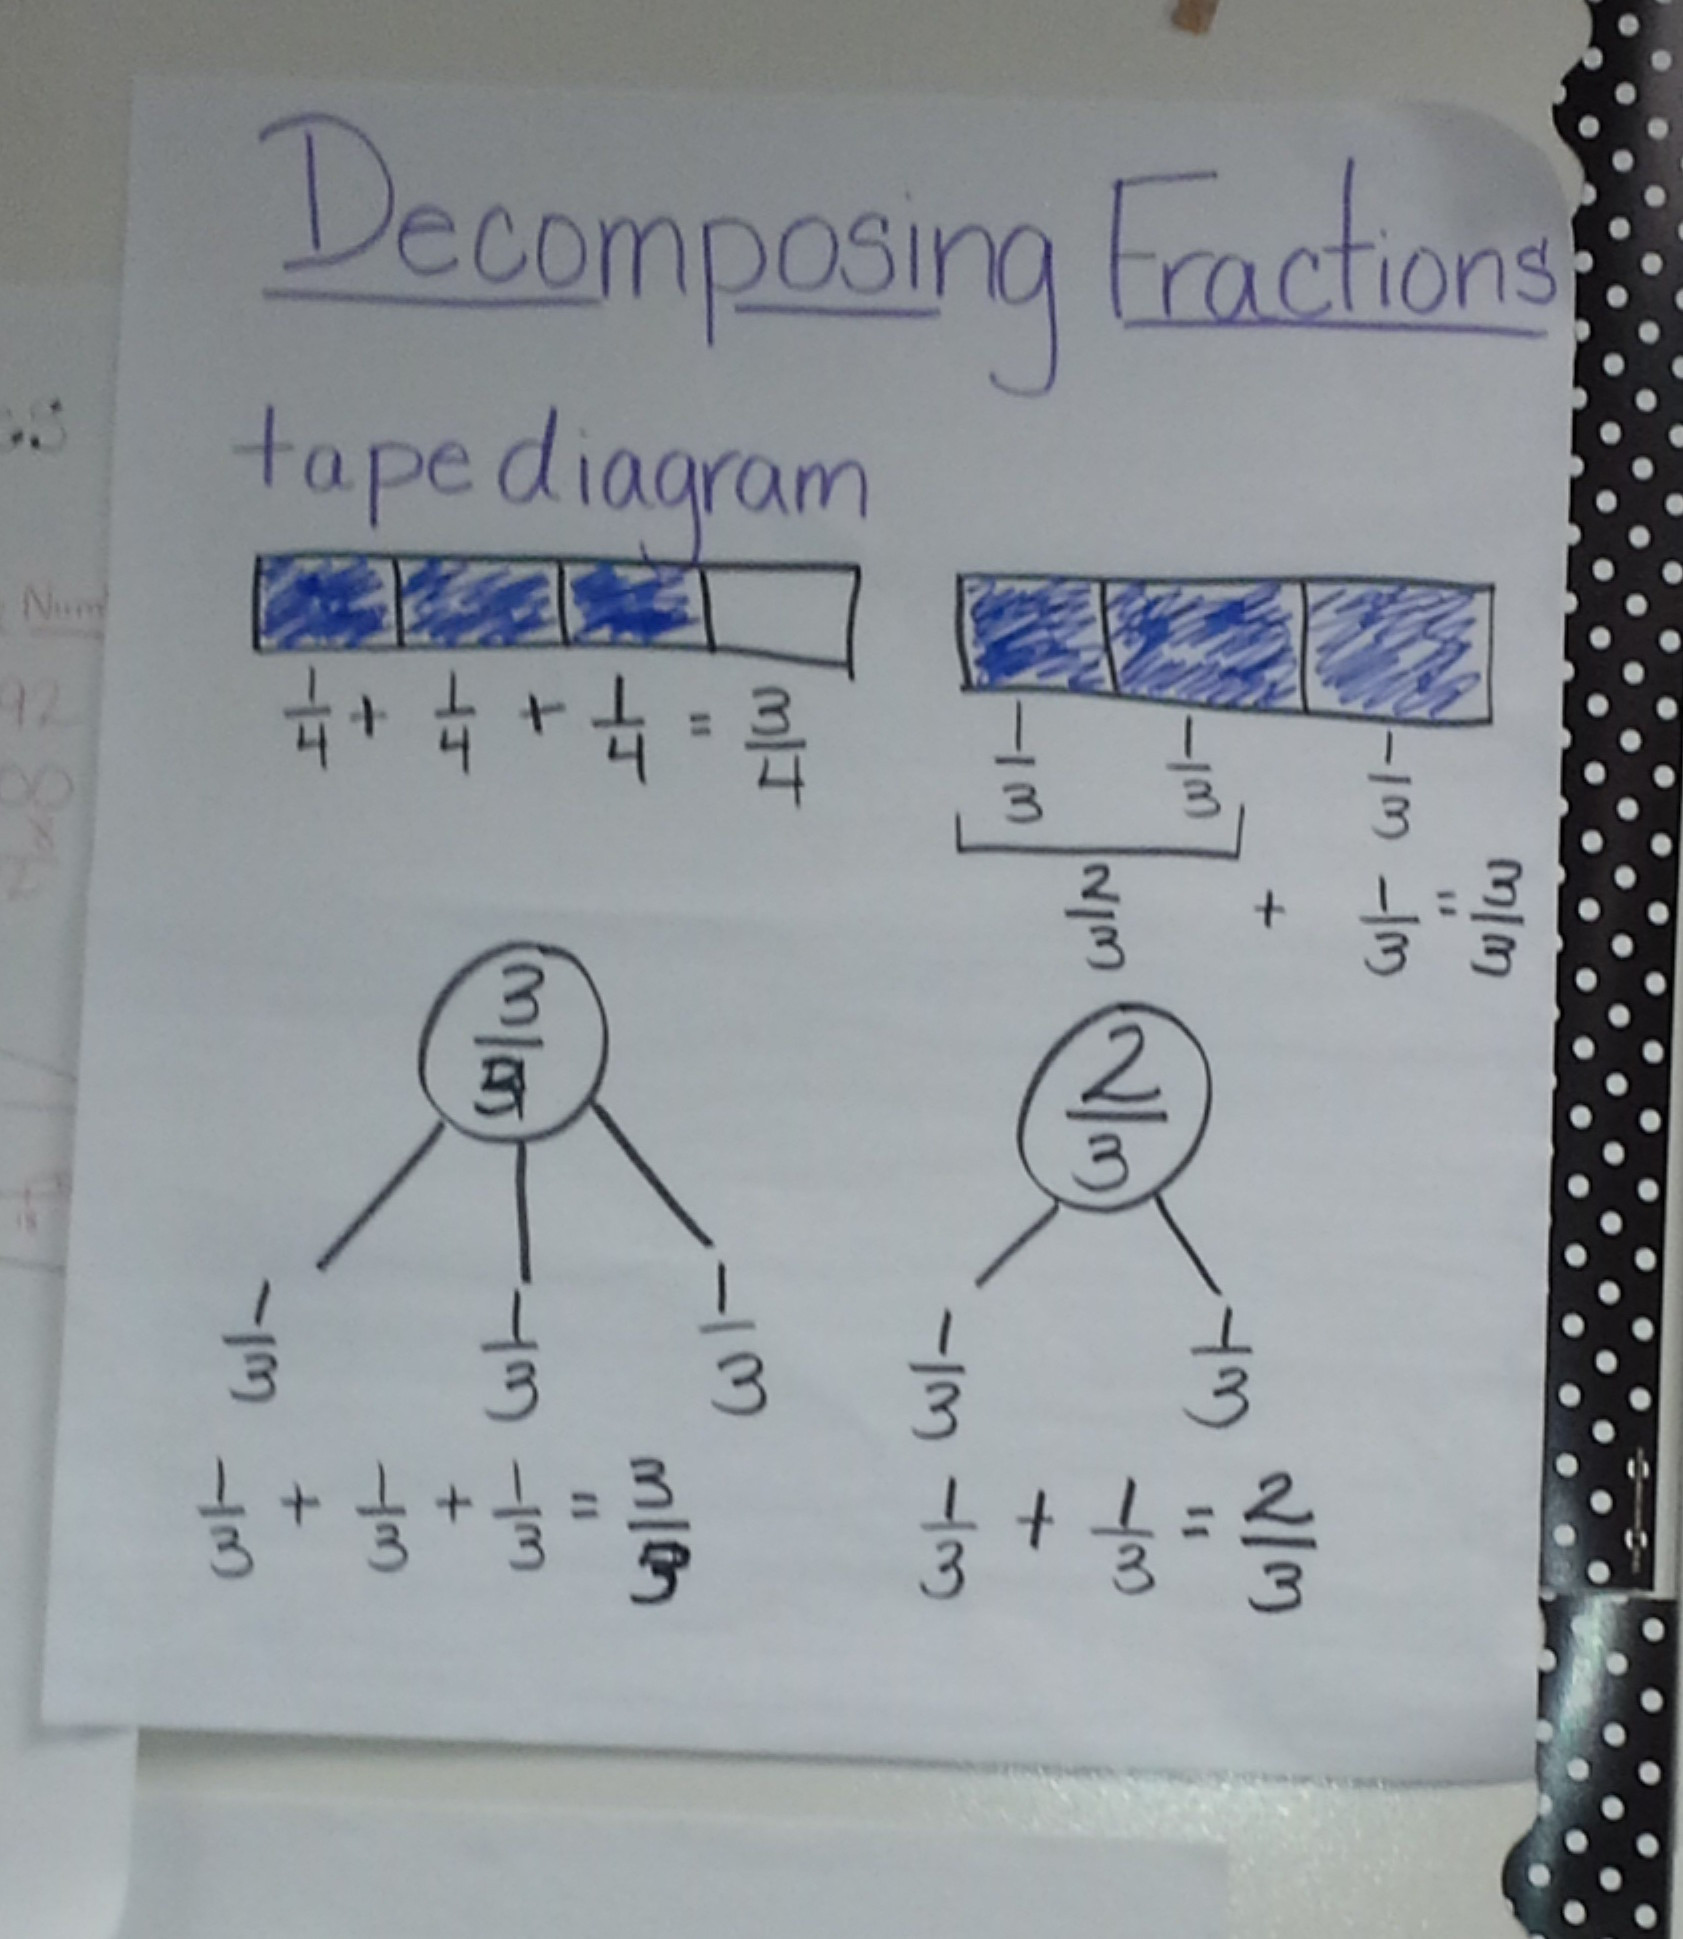 Decomposing Fractions Worksheets 4th Grade De Posing Fractions the Role Of the Denominator Ignited